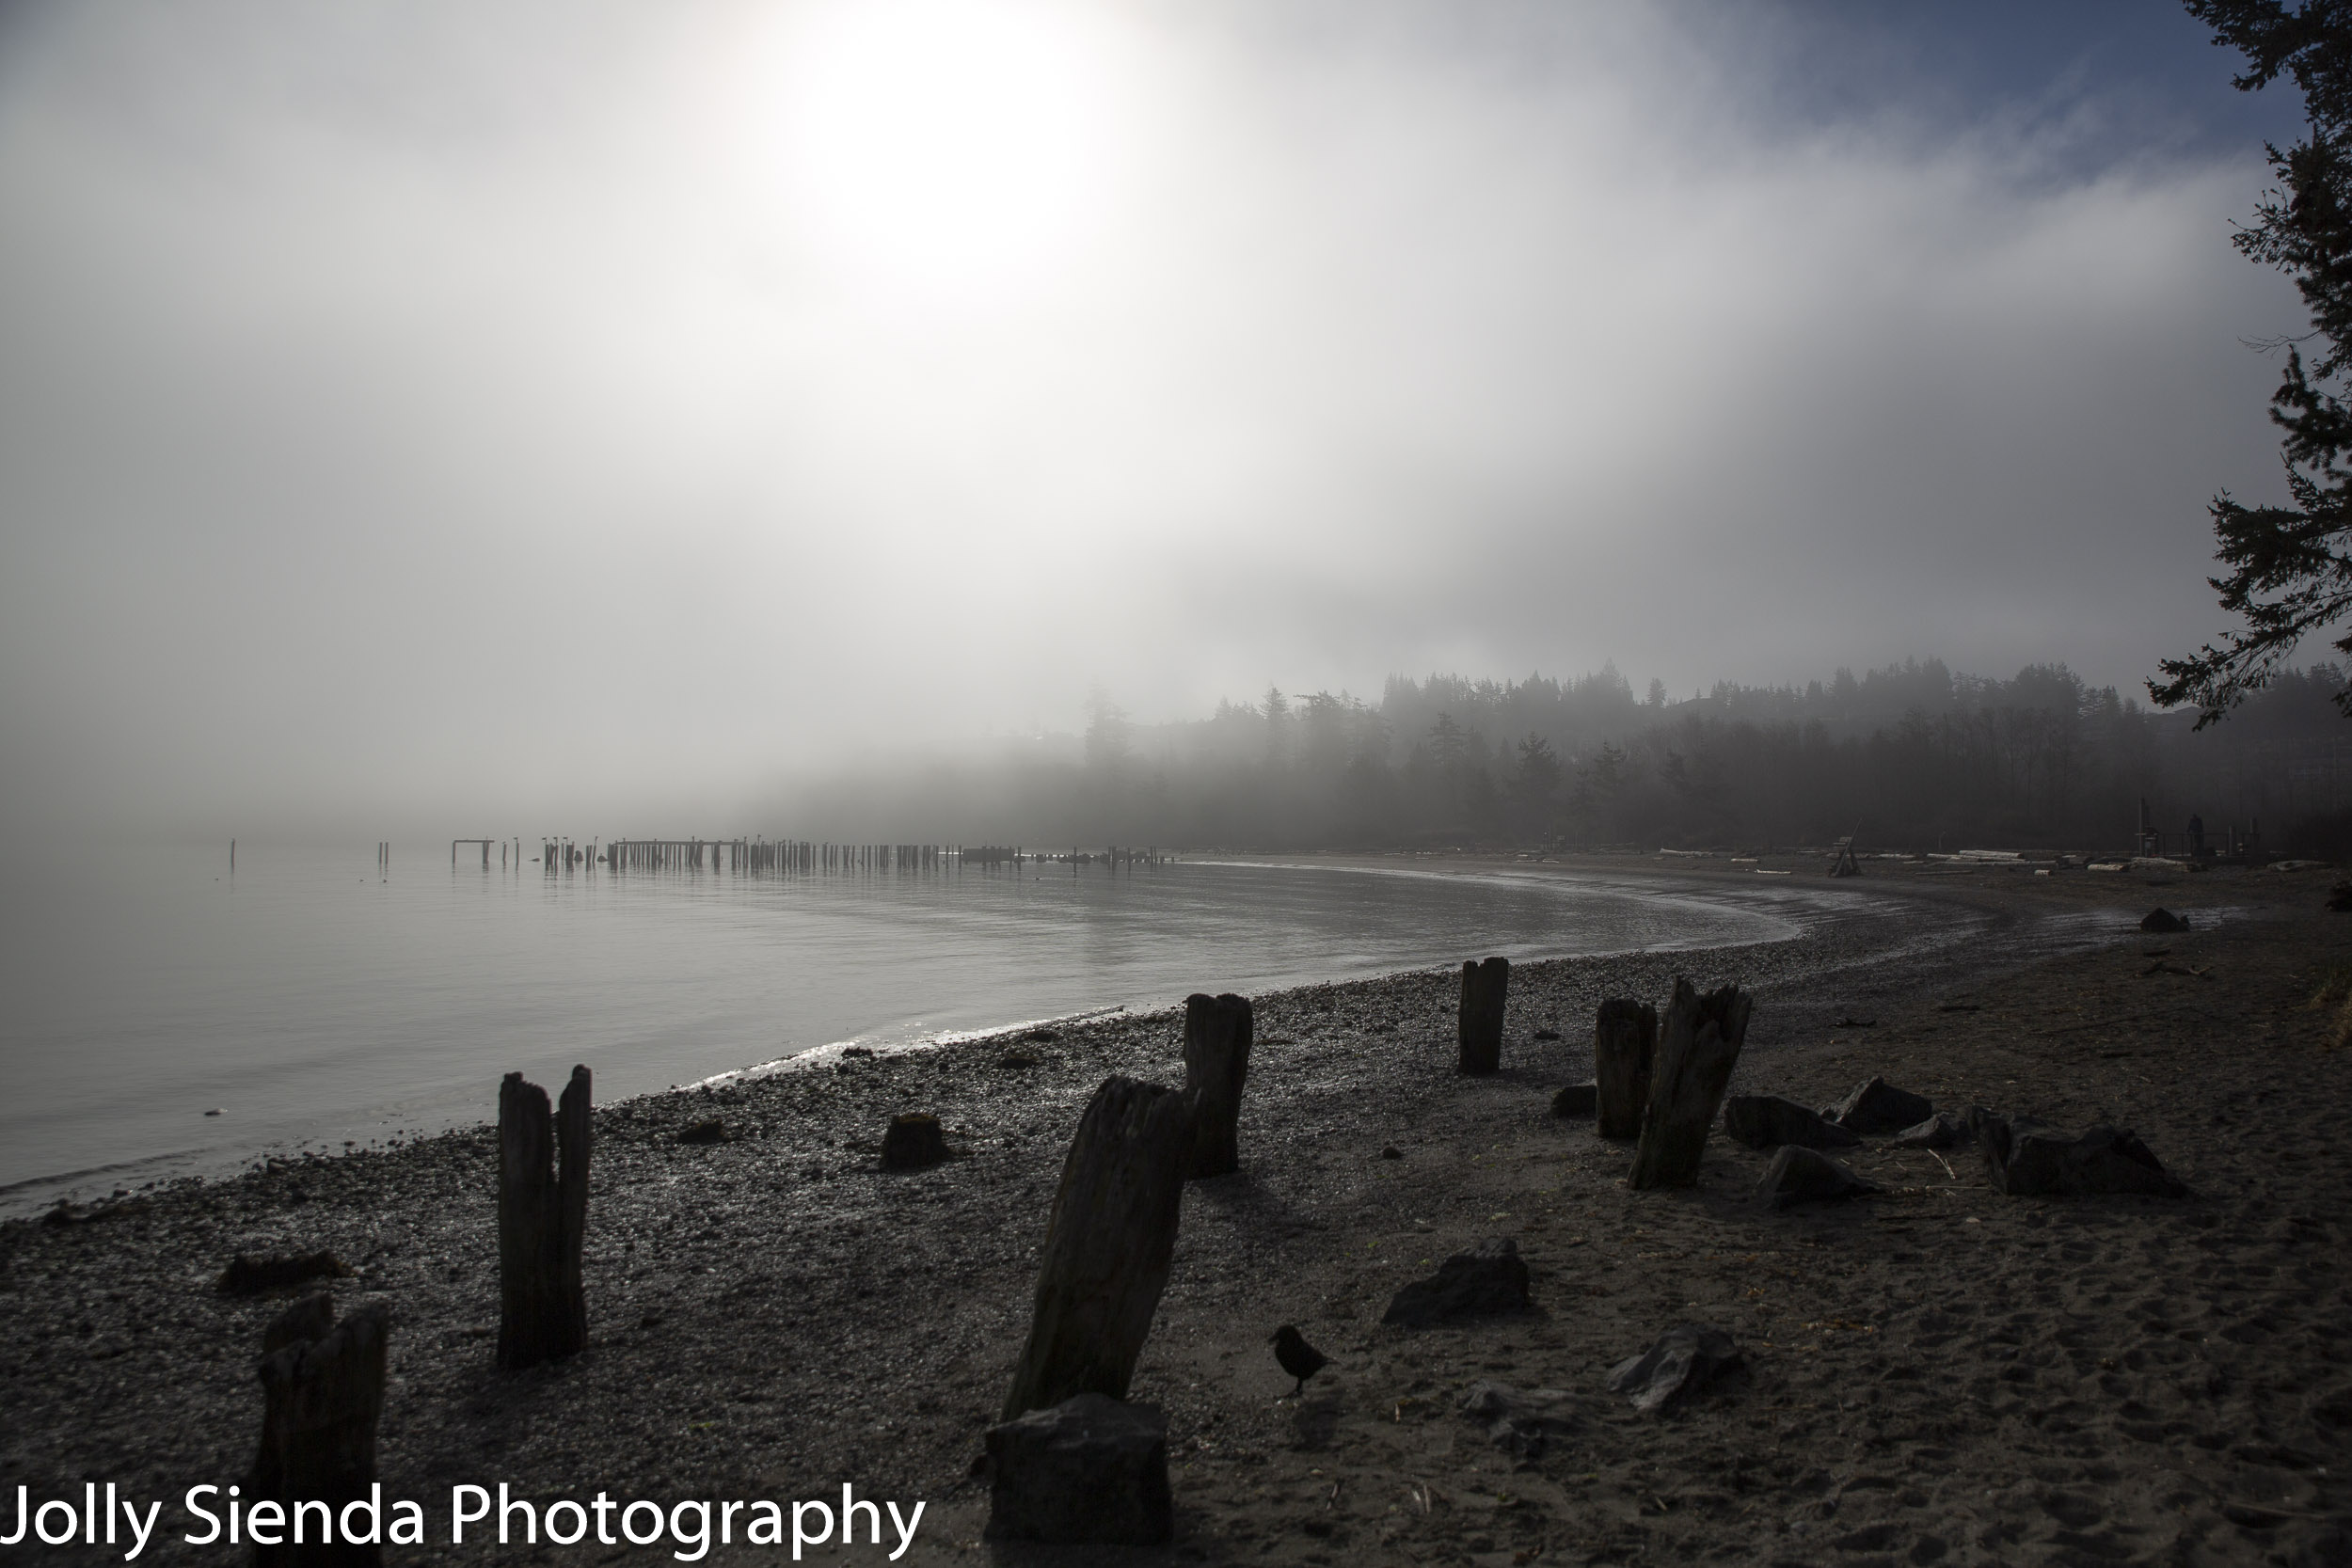 Crow and pilings at the foggy beach of Ship Harbor